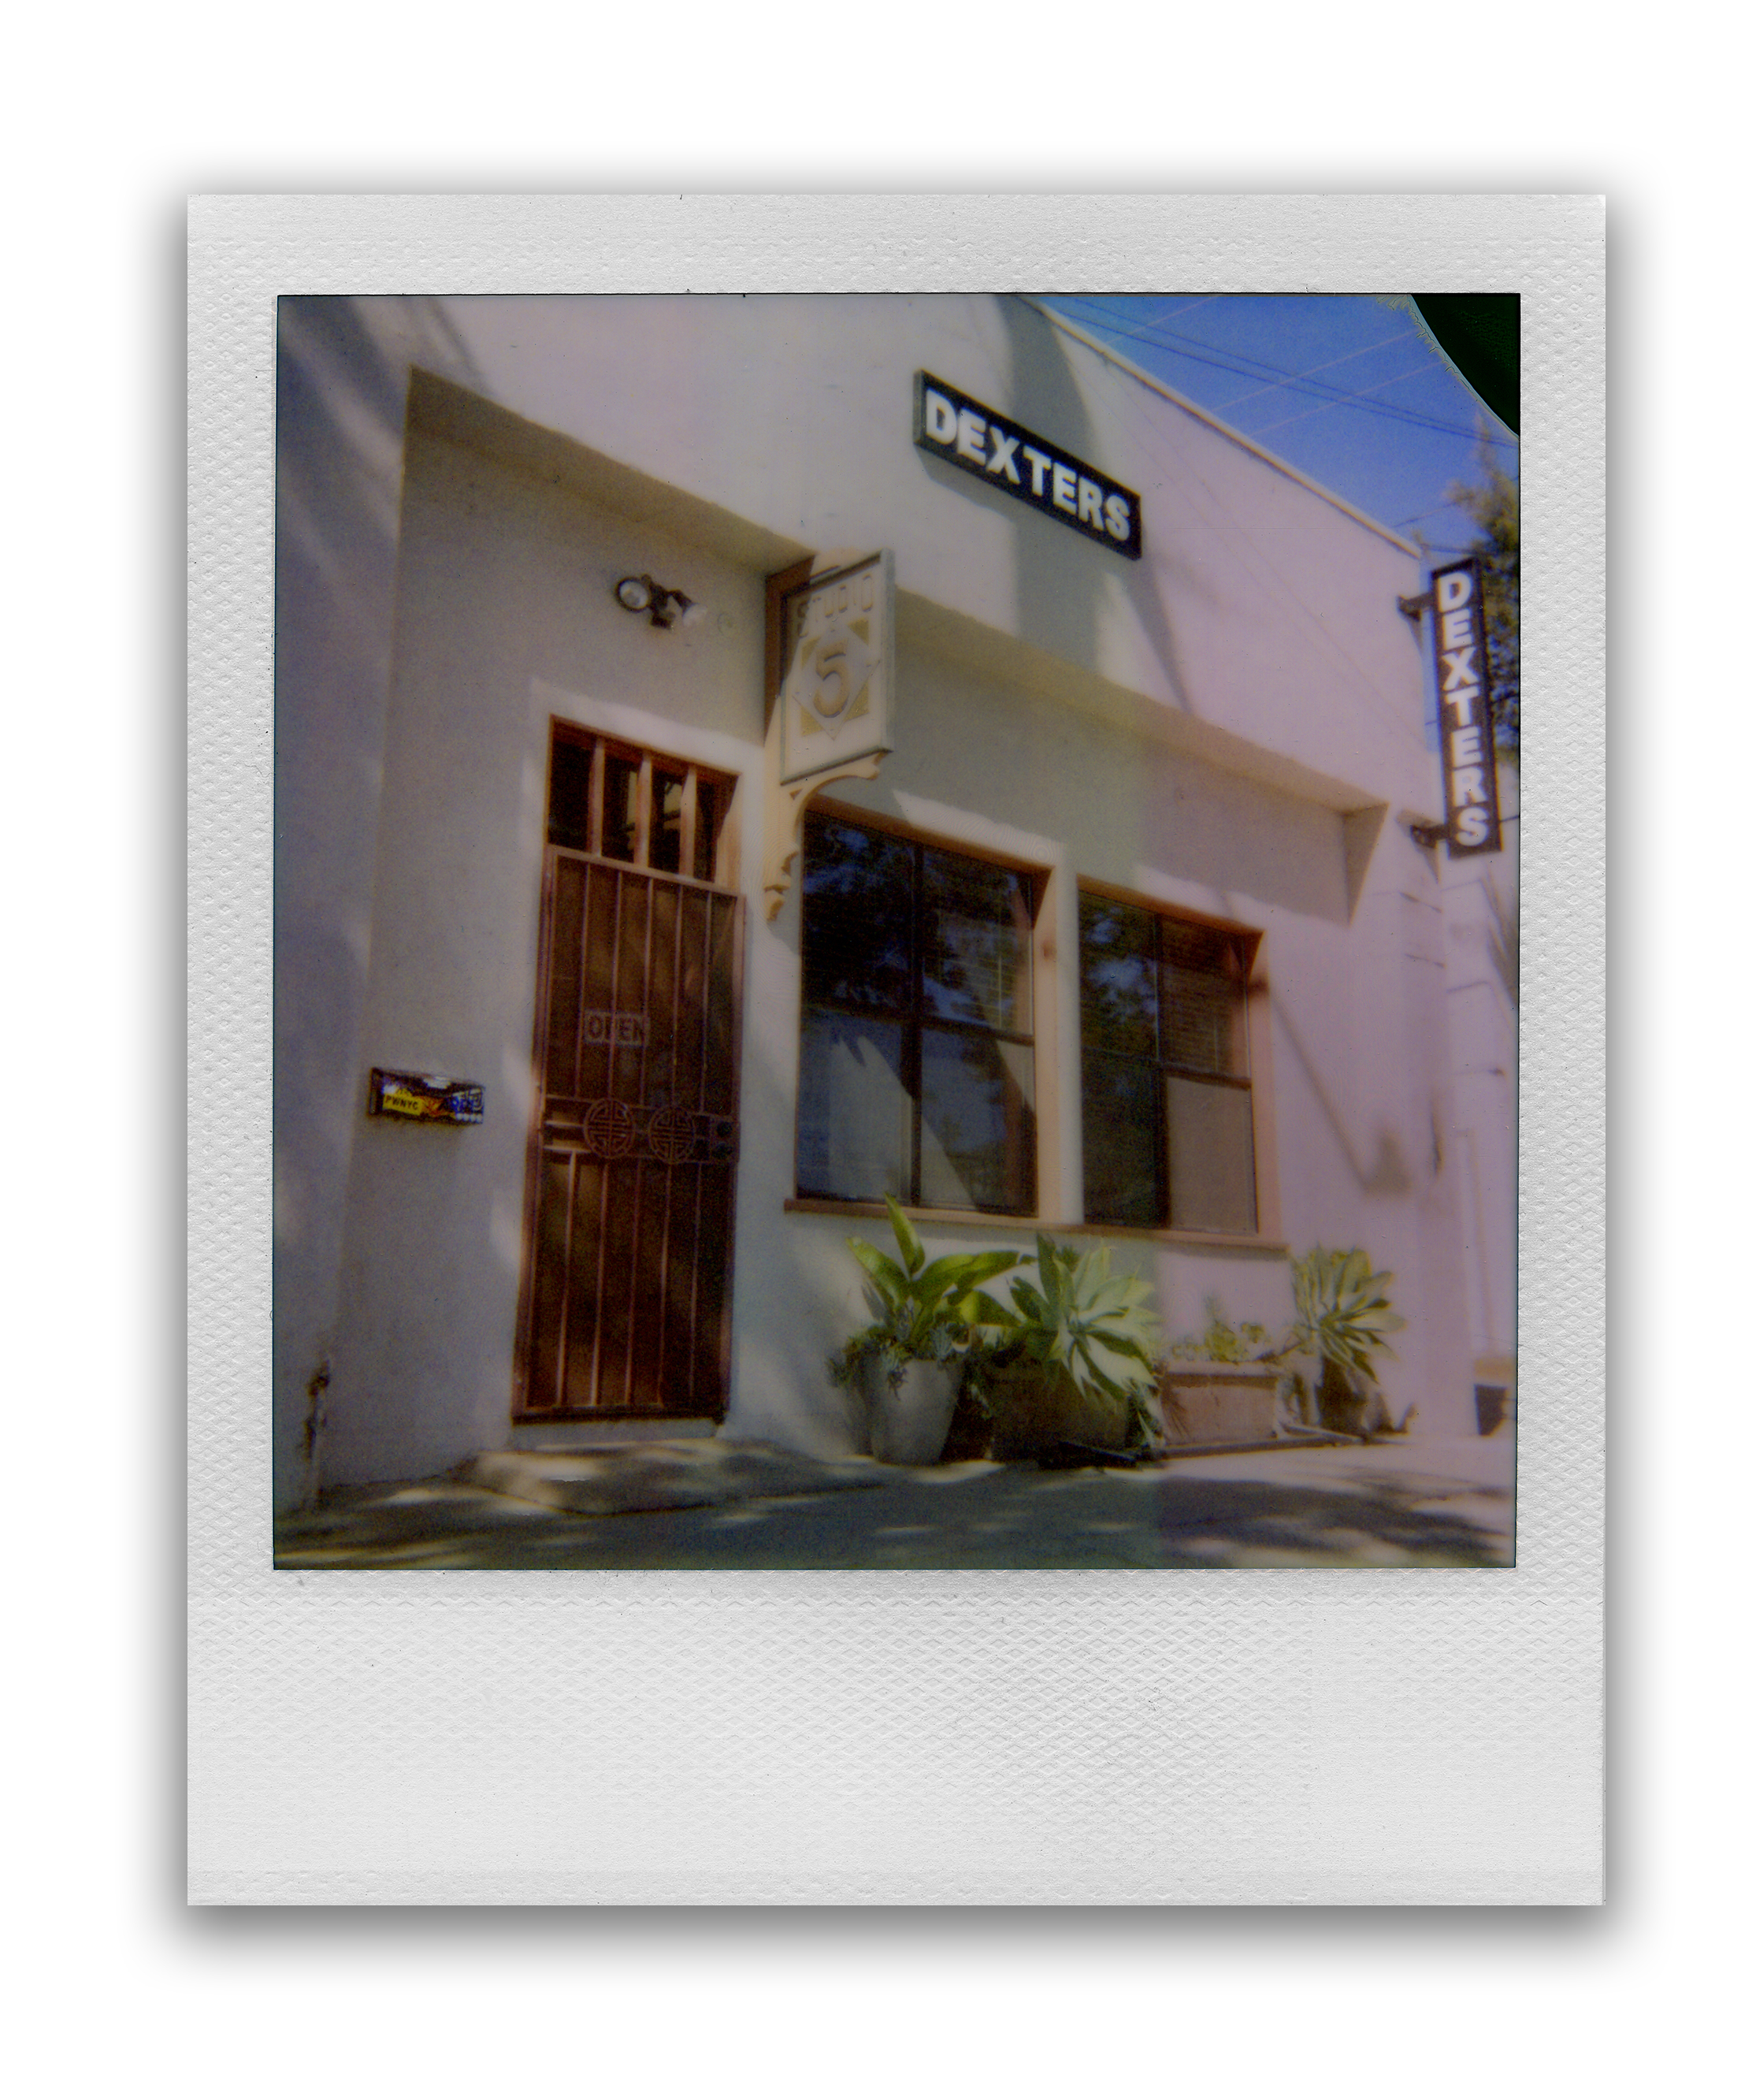 polaroid_shop shadow.jpg